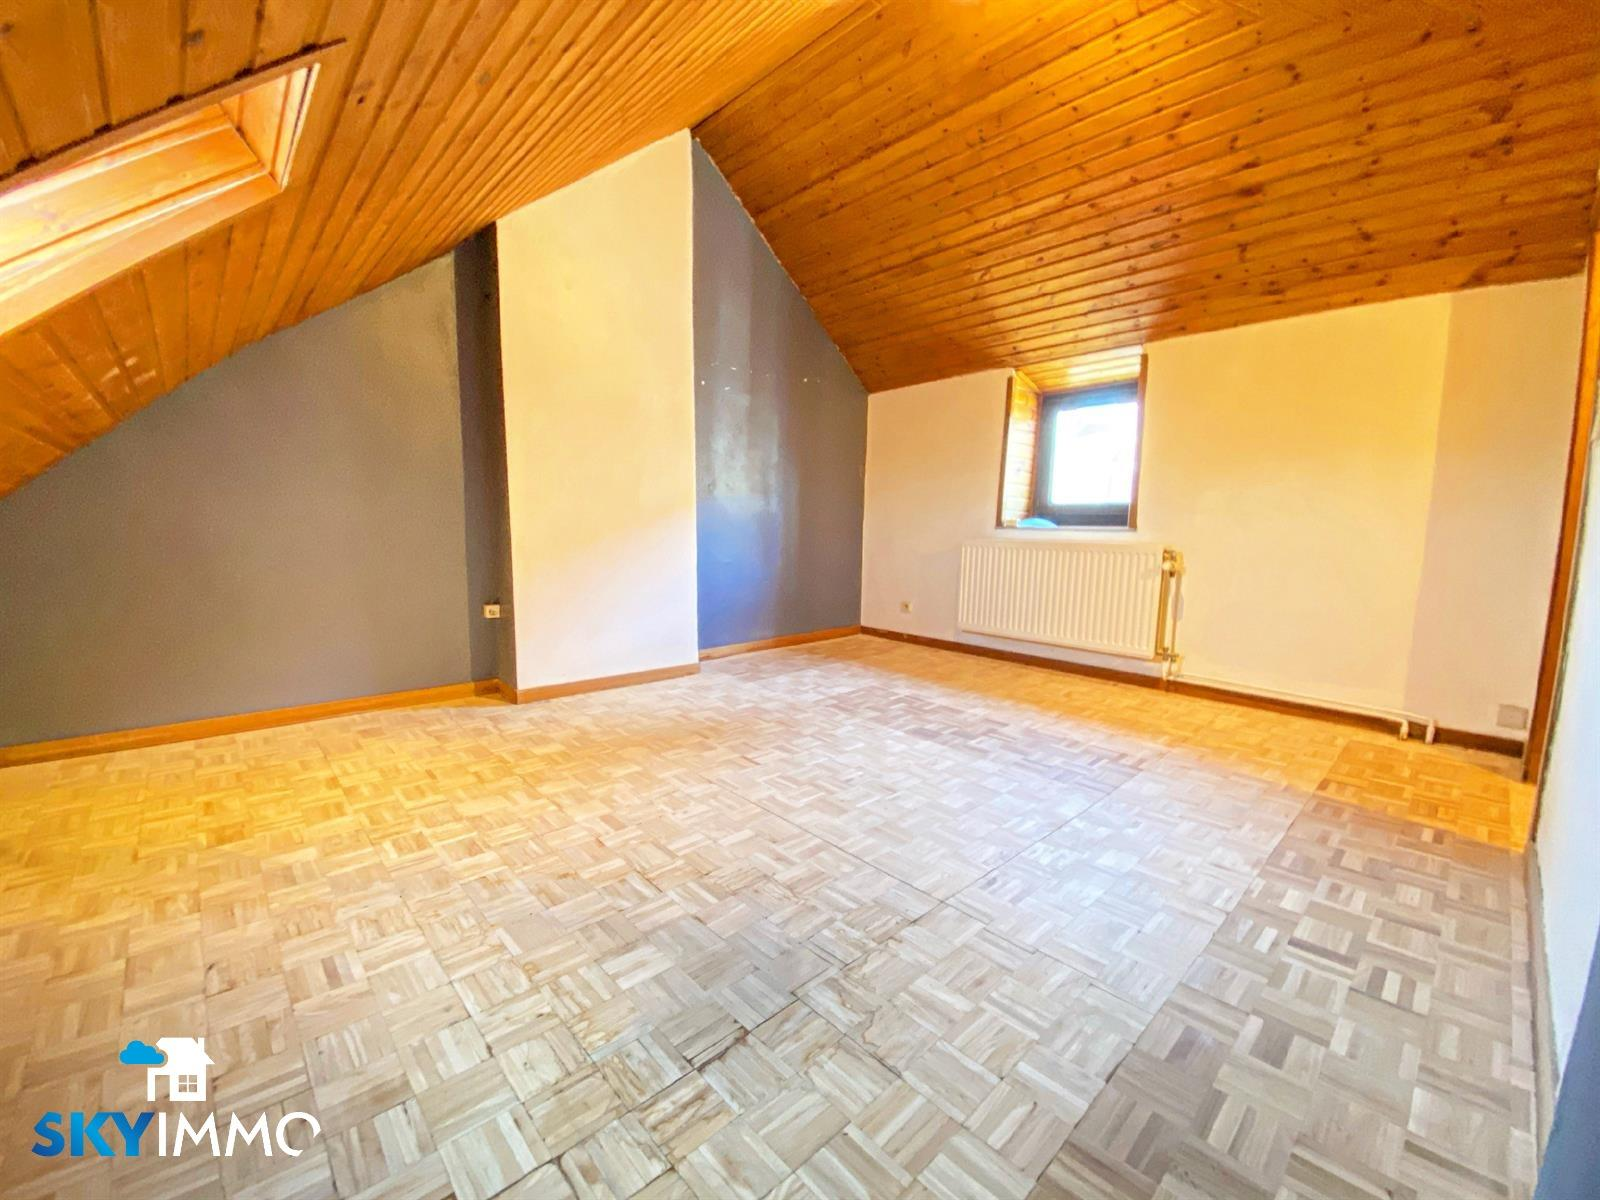 House - Flemalle - #4302890-21